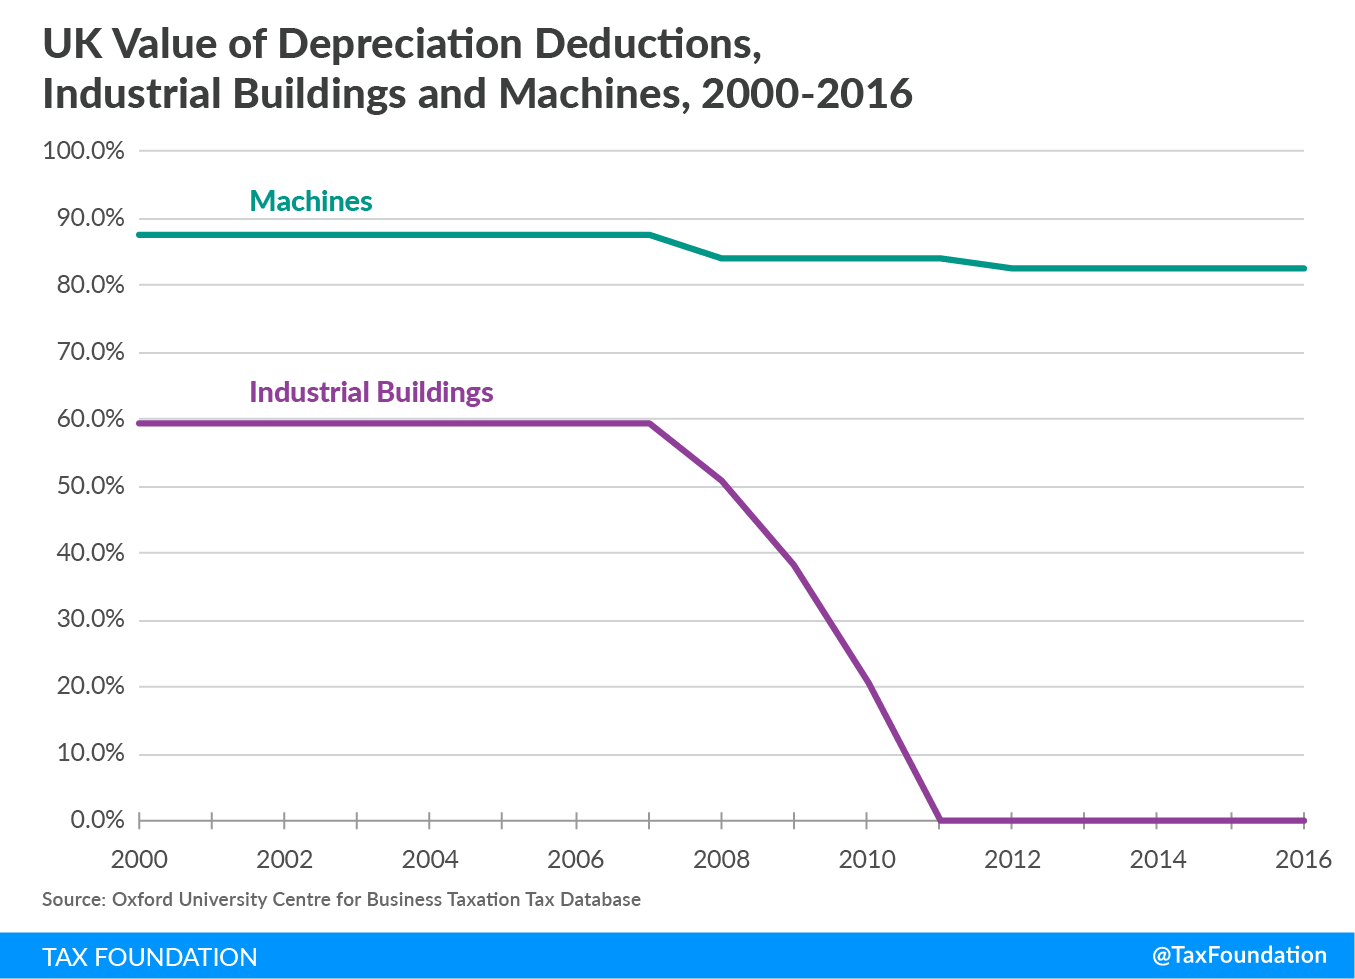 UK Value Depreciation Deductions, Industrial Buildings & Machines, 2000-2016